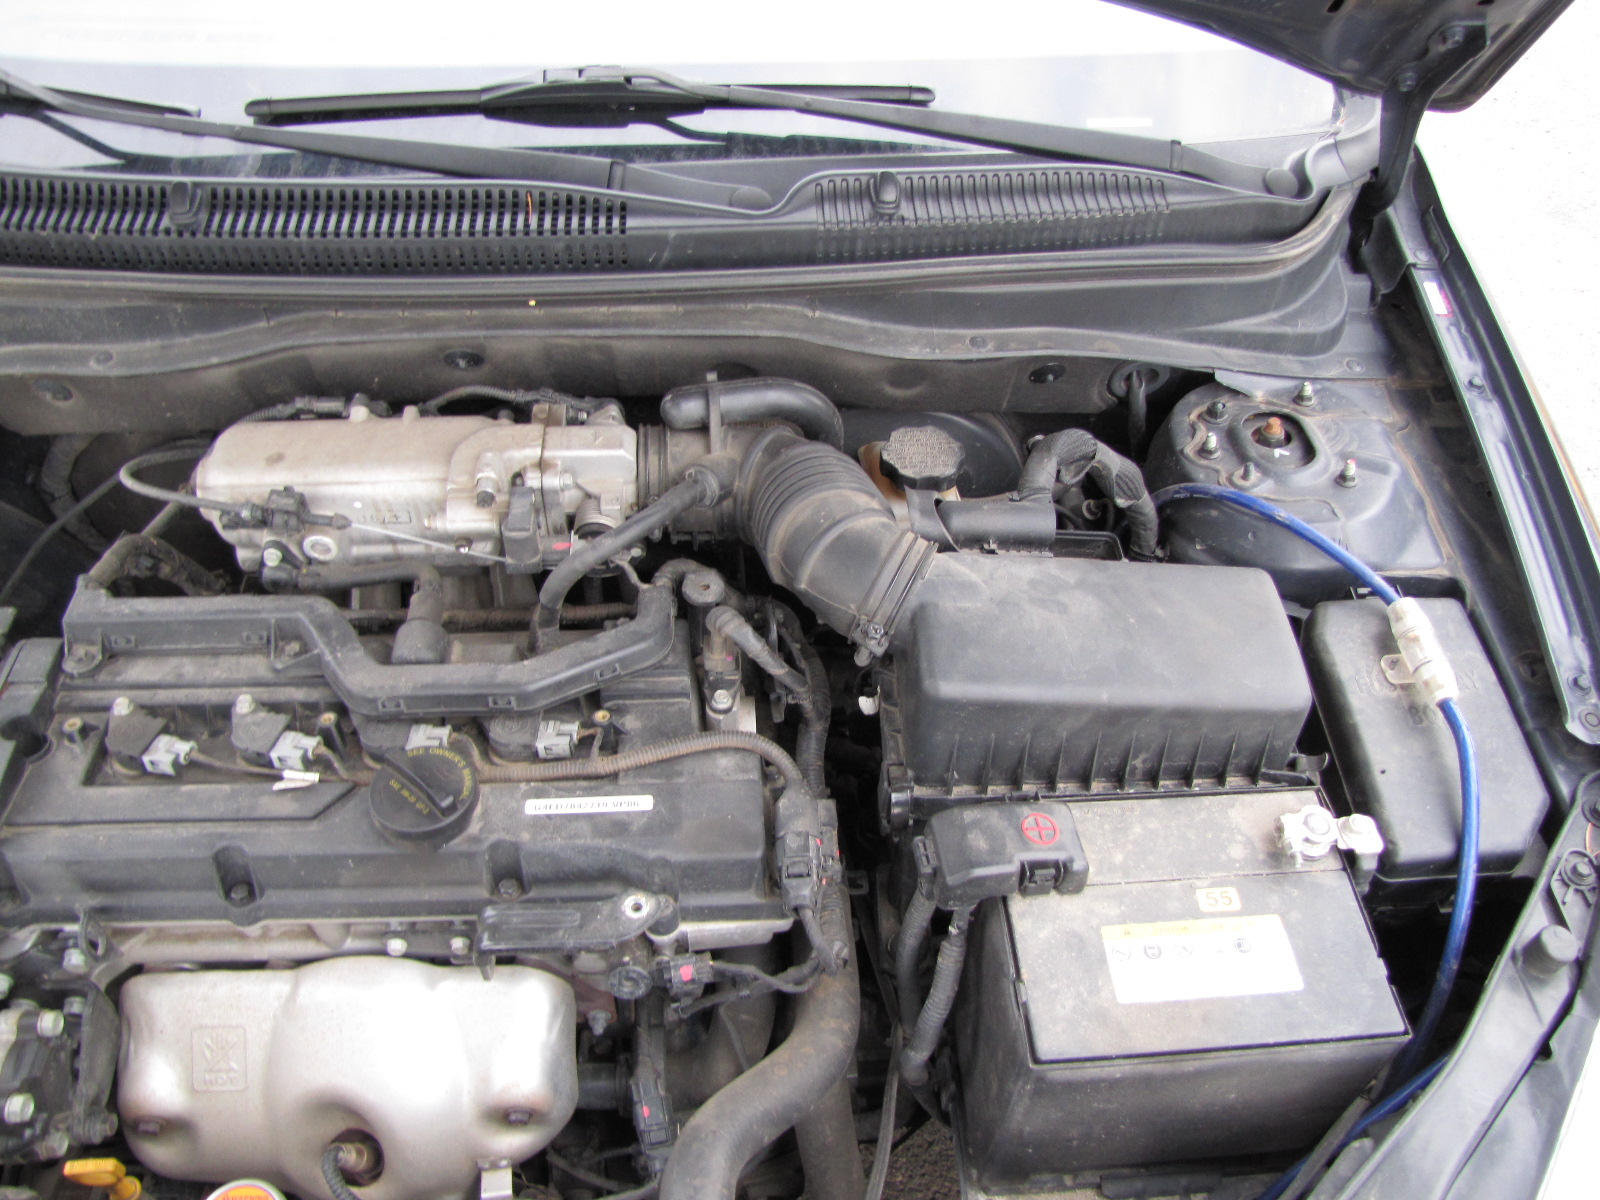 P0171 Lean Fuel Bank 1 - Trouble Starting   Hyundai Forums